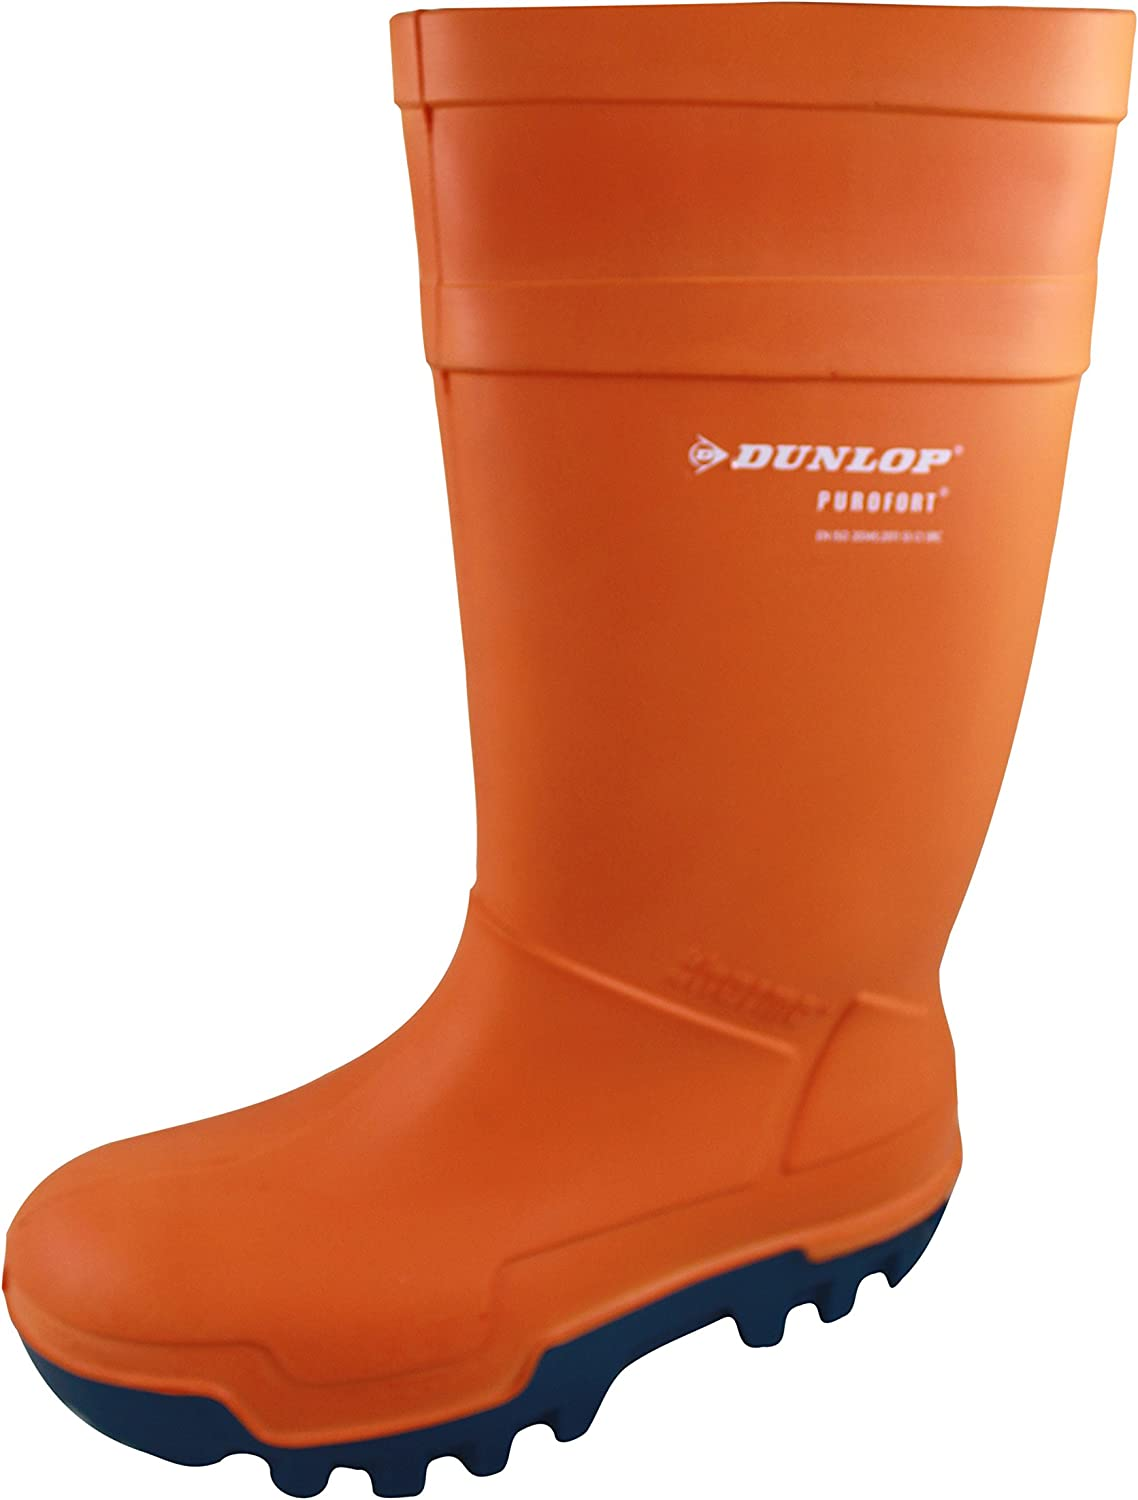 Dunlop Purofort Thermo orange Safety Wellies Welly Wellington Boots Insulated 5-13